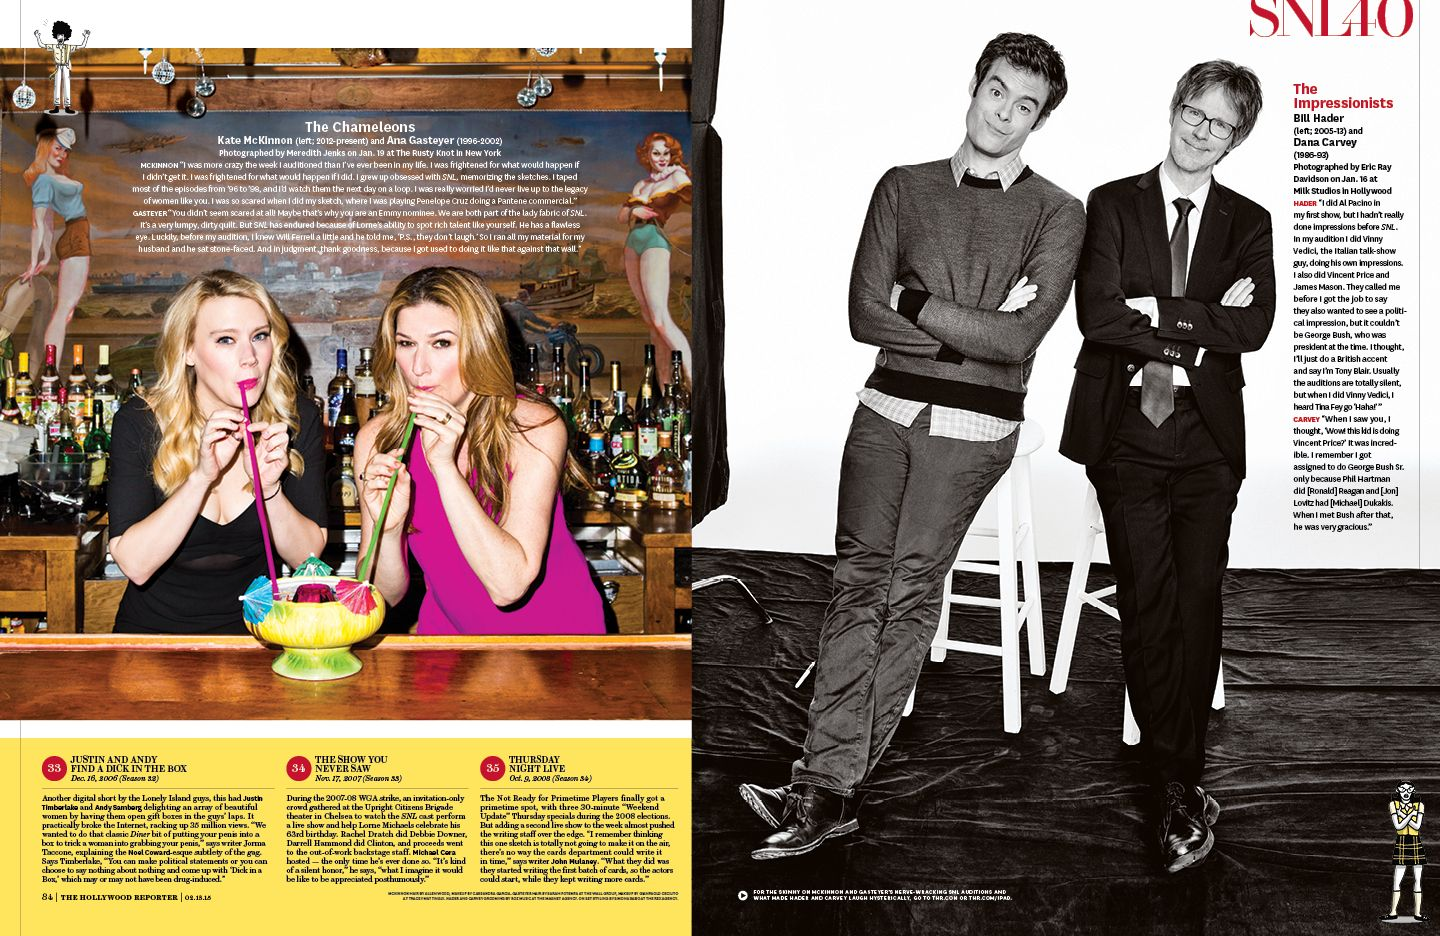 SNL 40 cover story layout in The Hollywood Reporter // kelsey stefanson / art direction + graphic design / yeskelsey.com